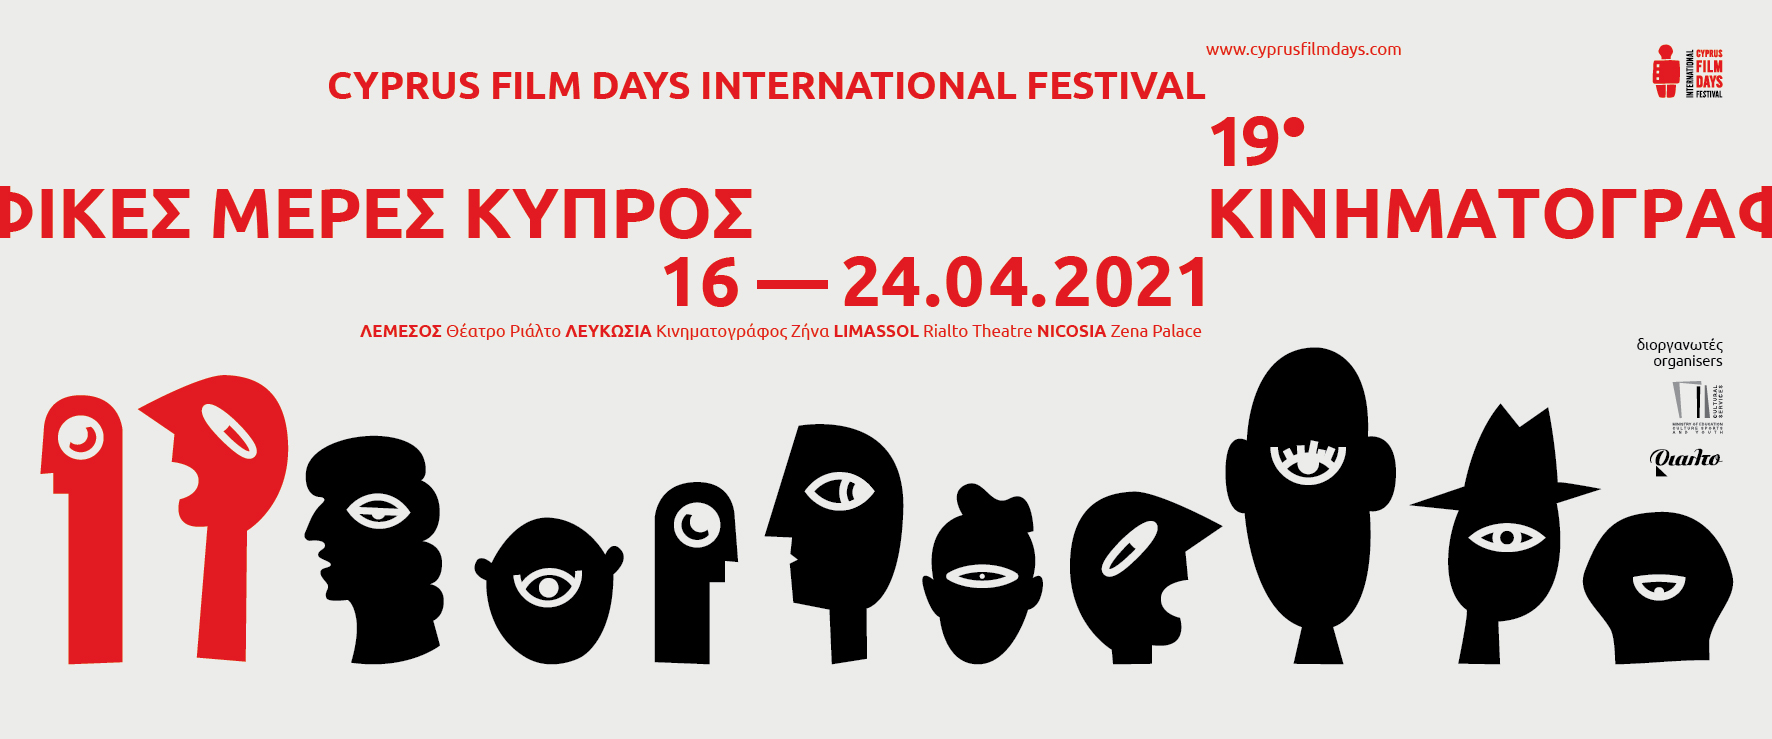 Cyprus film days mob